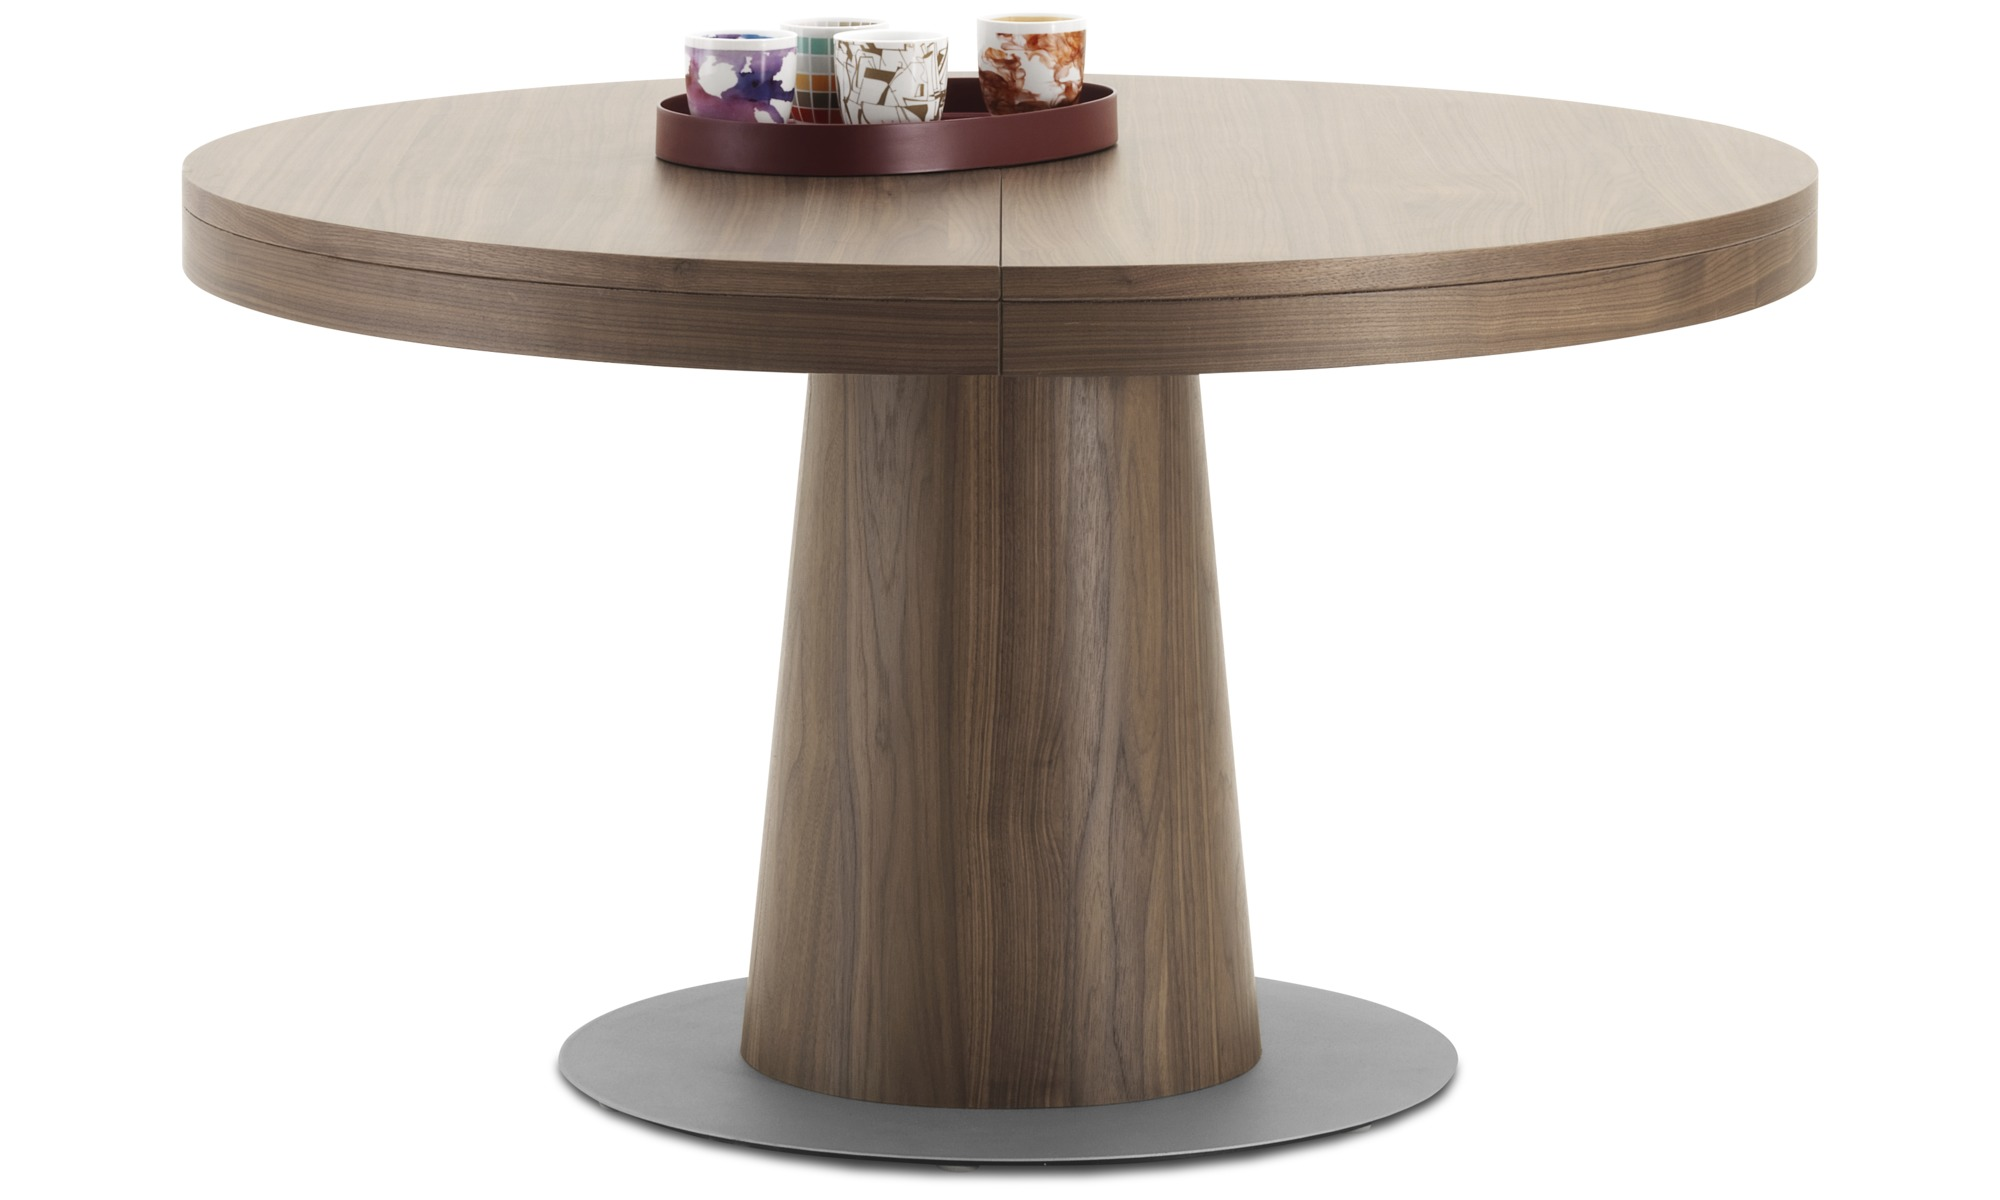 Dining Tables   Granada Table With Supplementary Tabletop   Round   Brown    Walnut ...